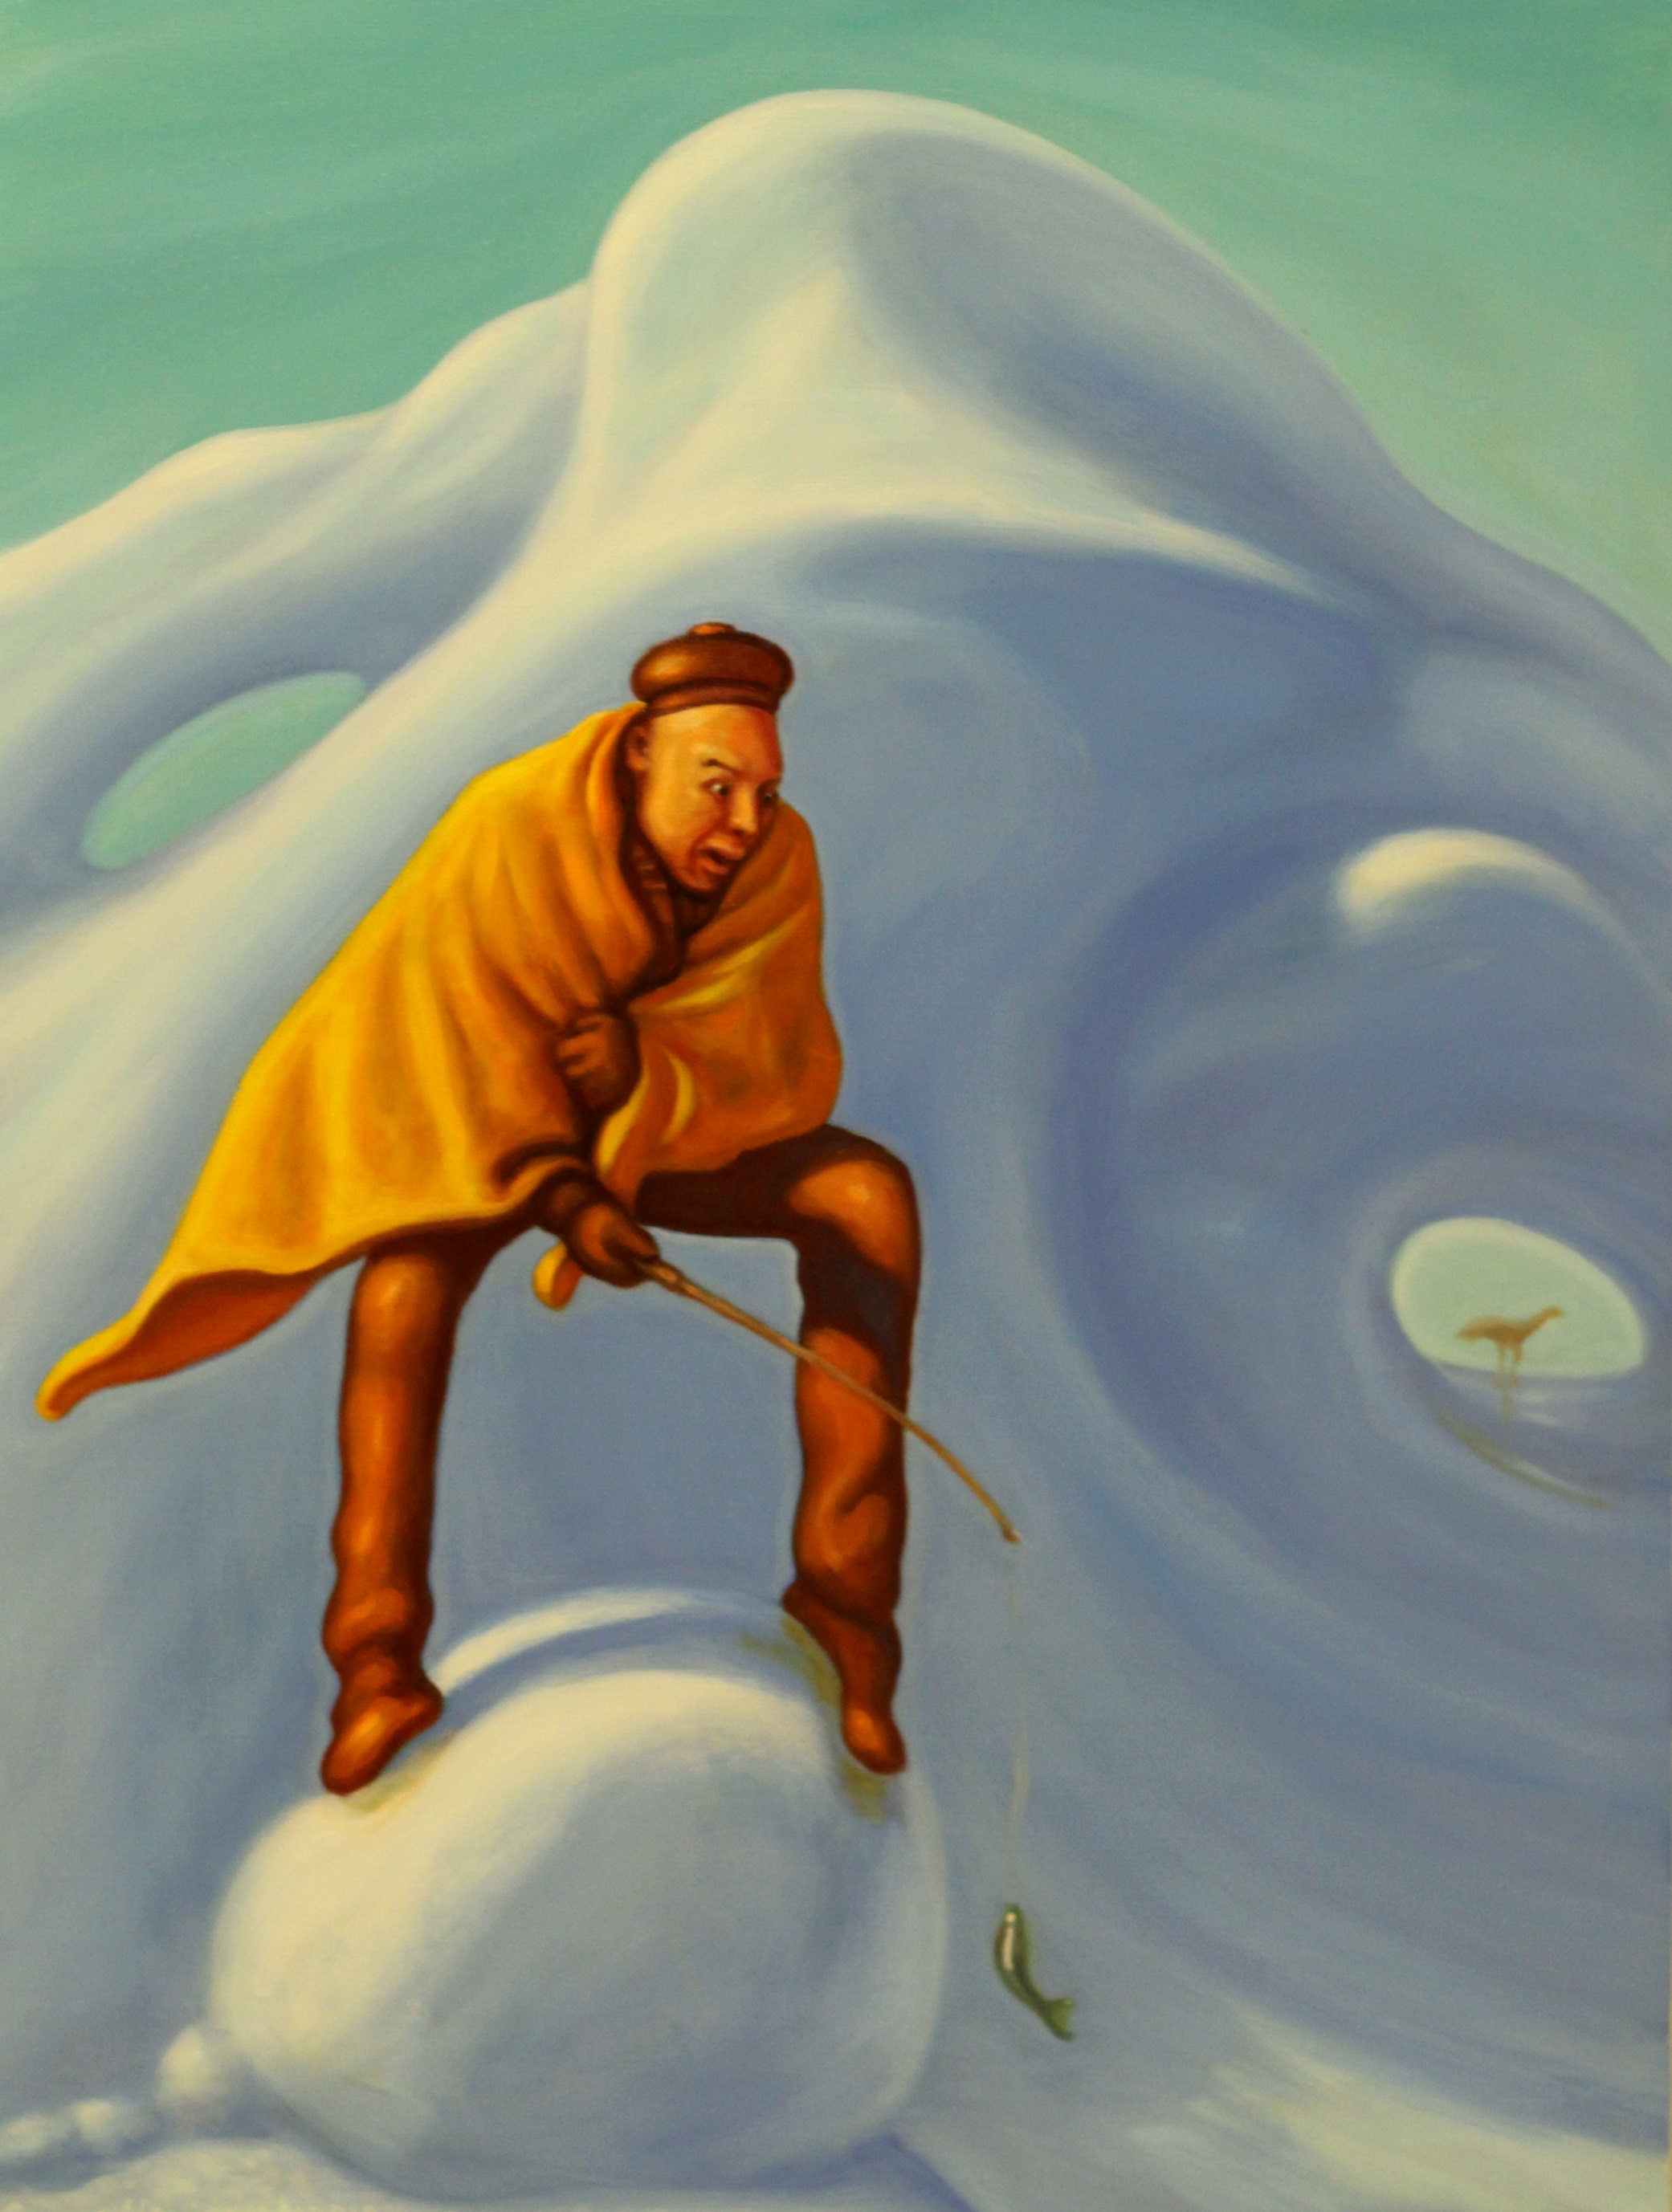 The Fisherman From Mountain, 2018